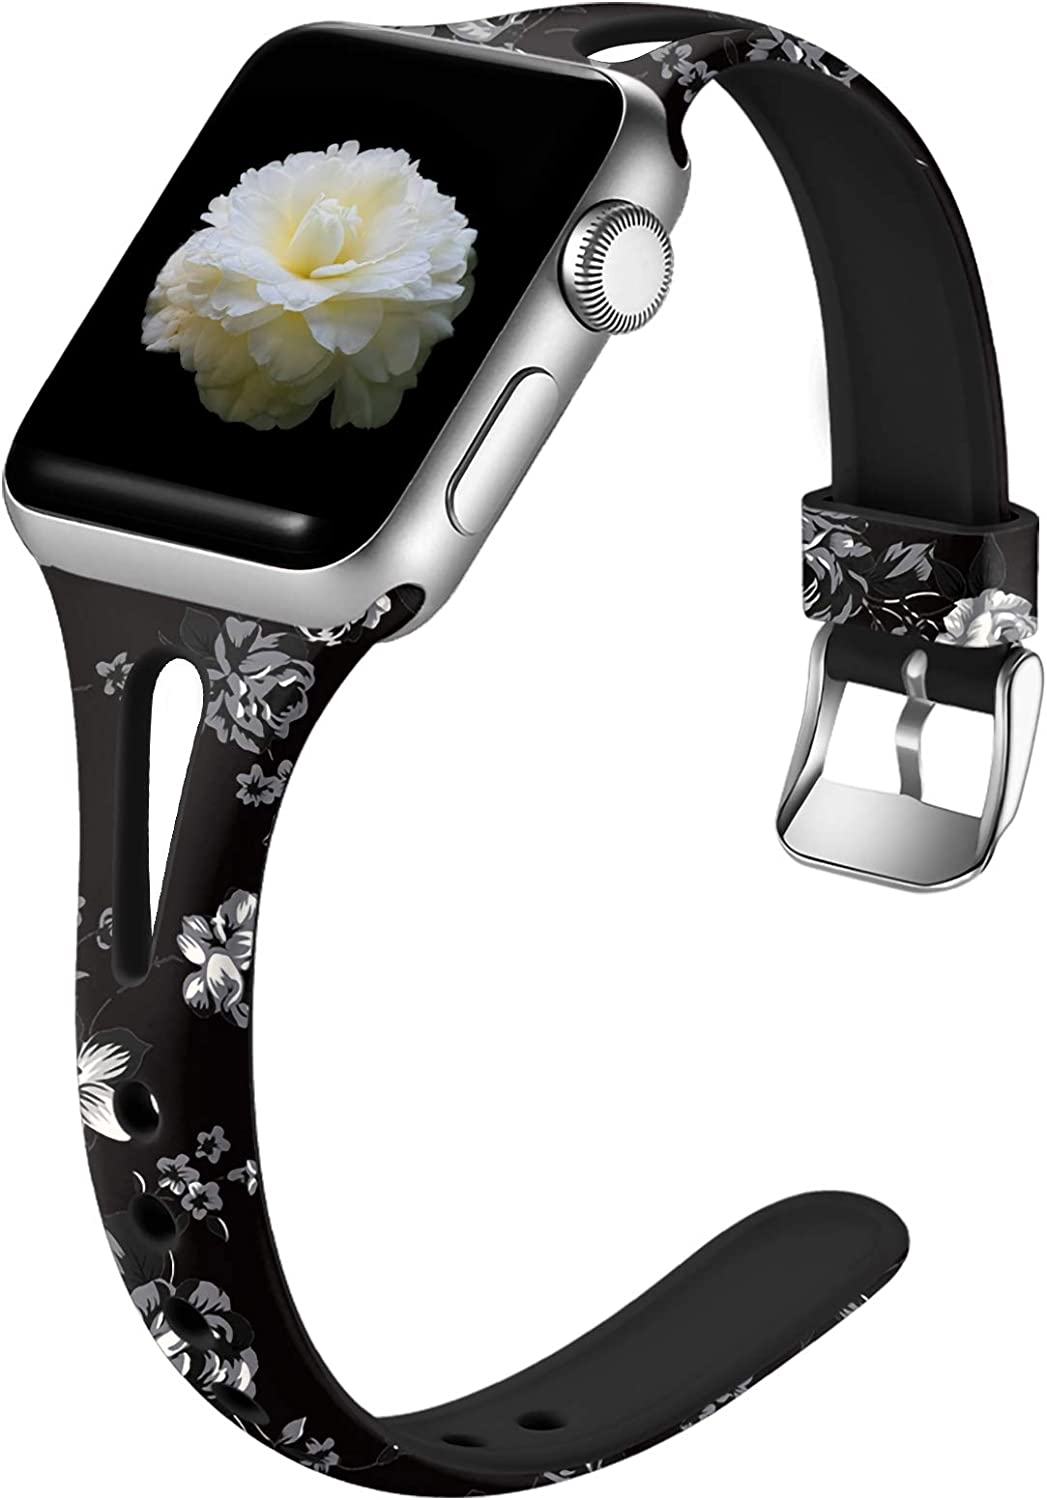 Easuny Slim Bands Compatible for Apple Watch Series 6 40mm Series 5 4 for Womens, Soft Cute Thin for Apple Watch SE 38mm Bands,Series 3 2/1, iWatch Printed Silicone Wristband S/M, Gray Flower